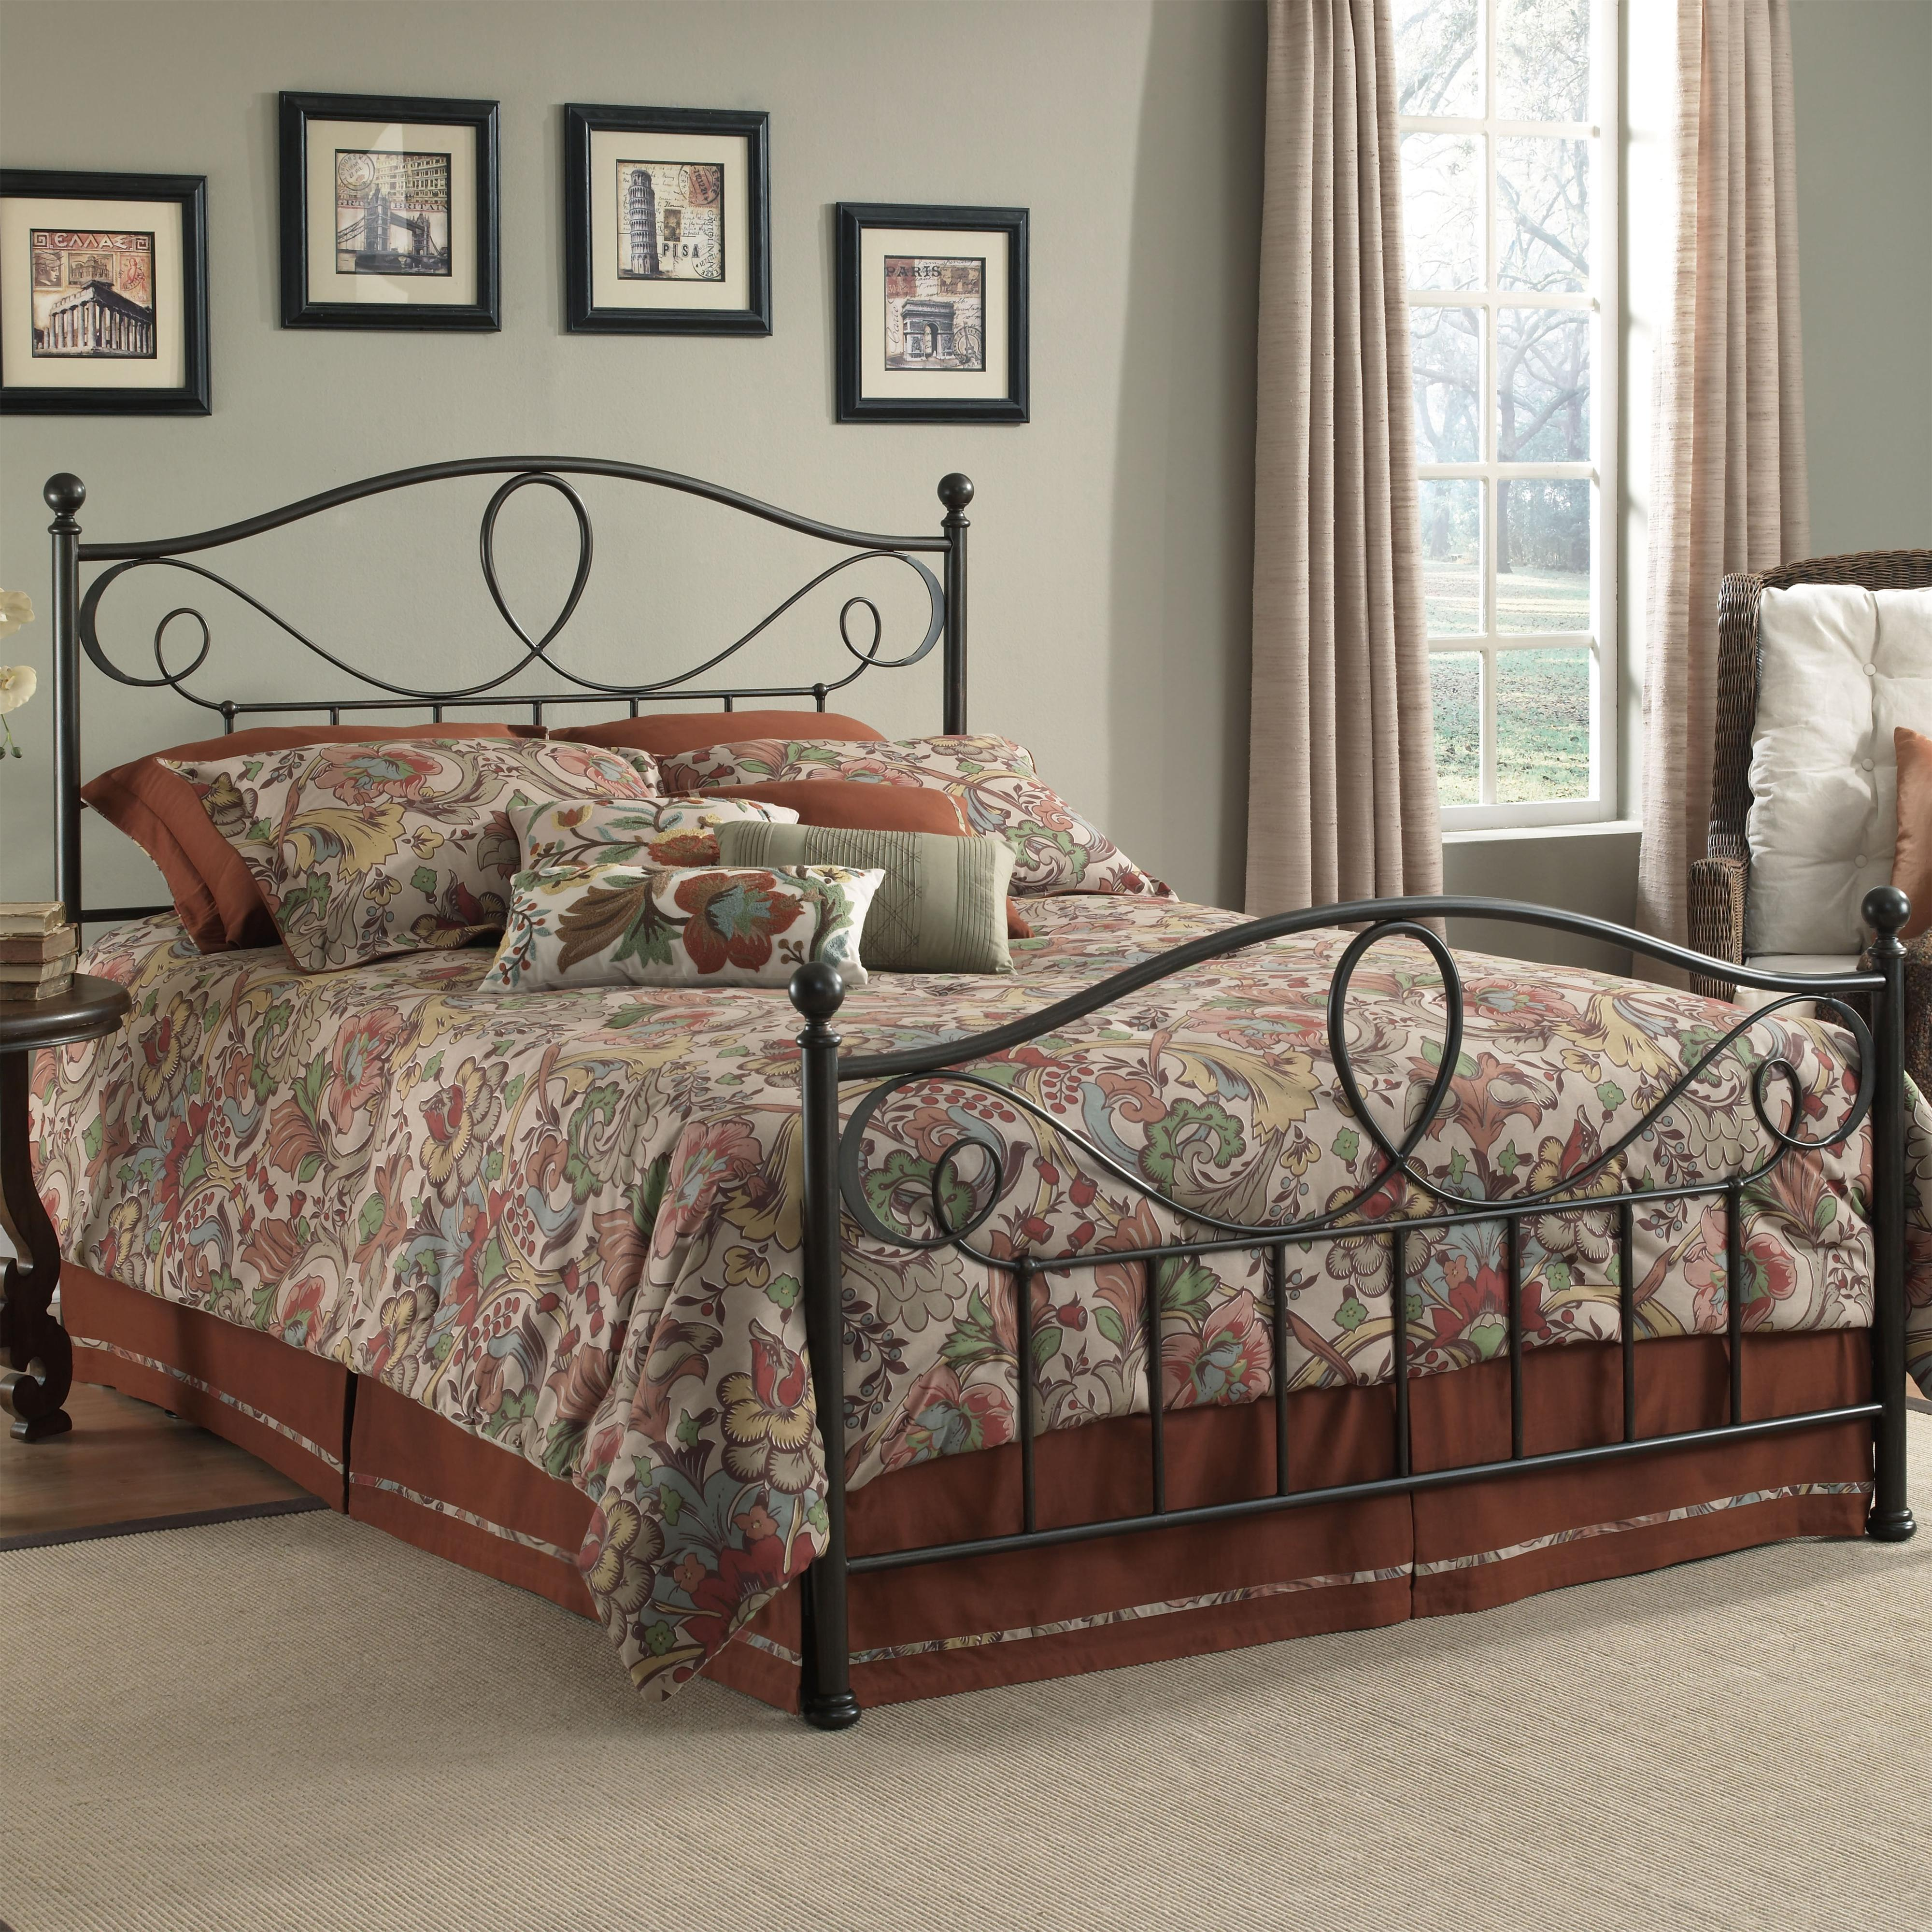 Metal Bed Bedroom Fashion Bed Group Metal Beds Queen Sylvania Bed W Frame Vandrie